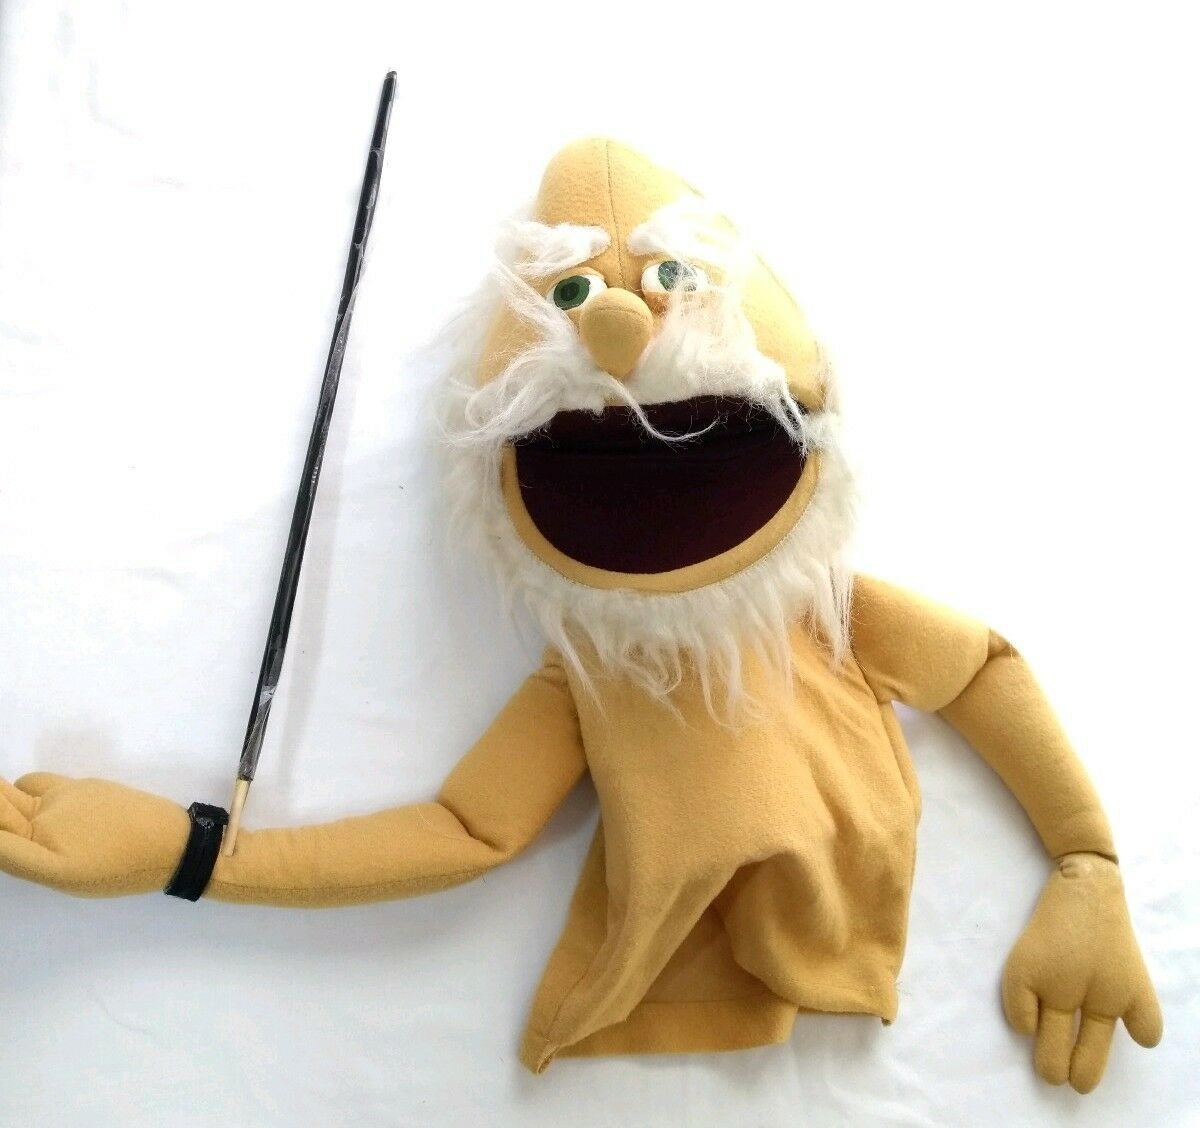 Vintage Hand Puppet Muppets Old Old Old Man 1977 0850a4